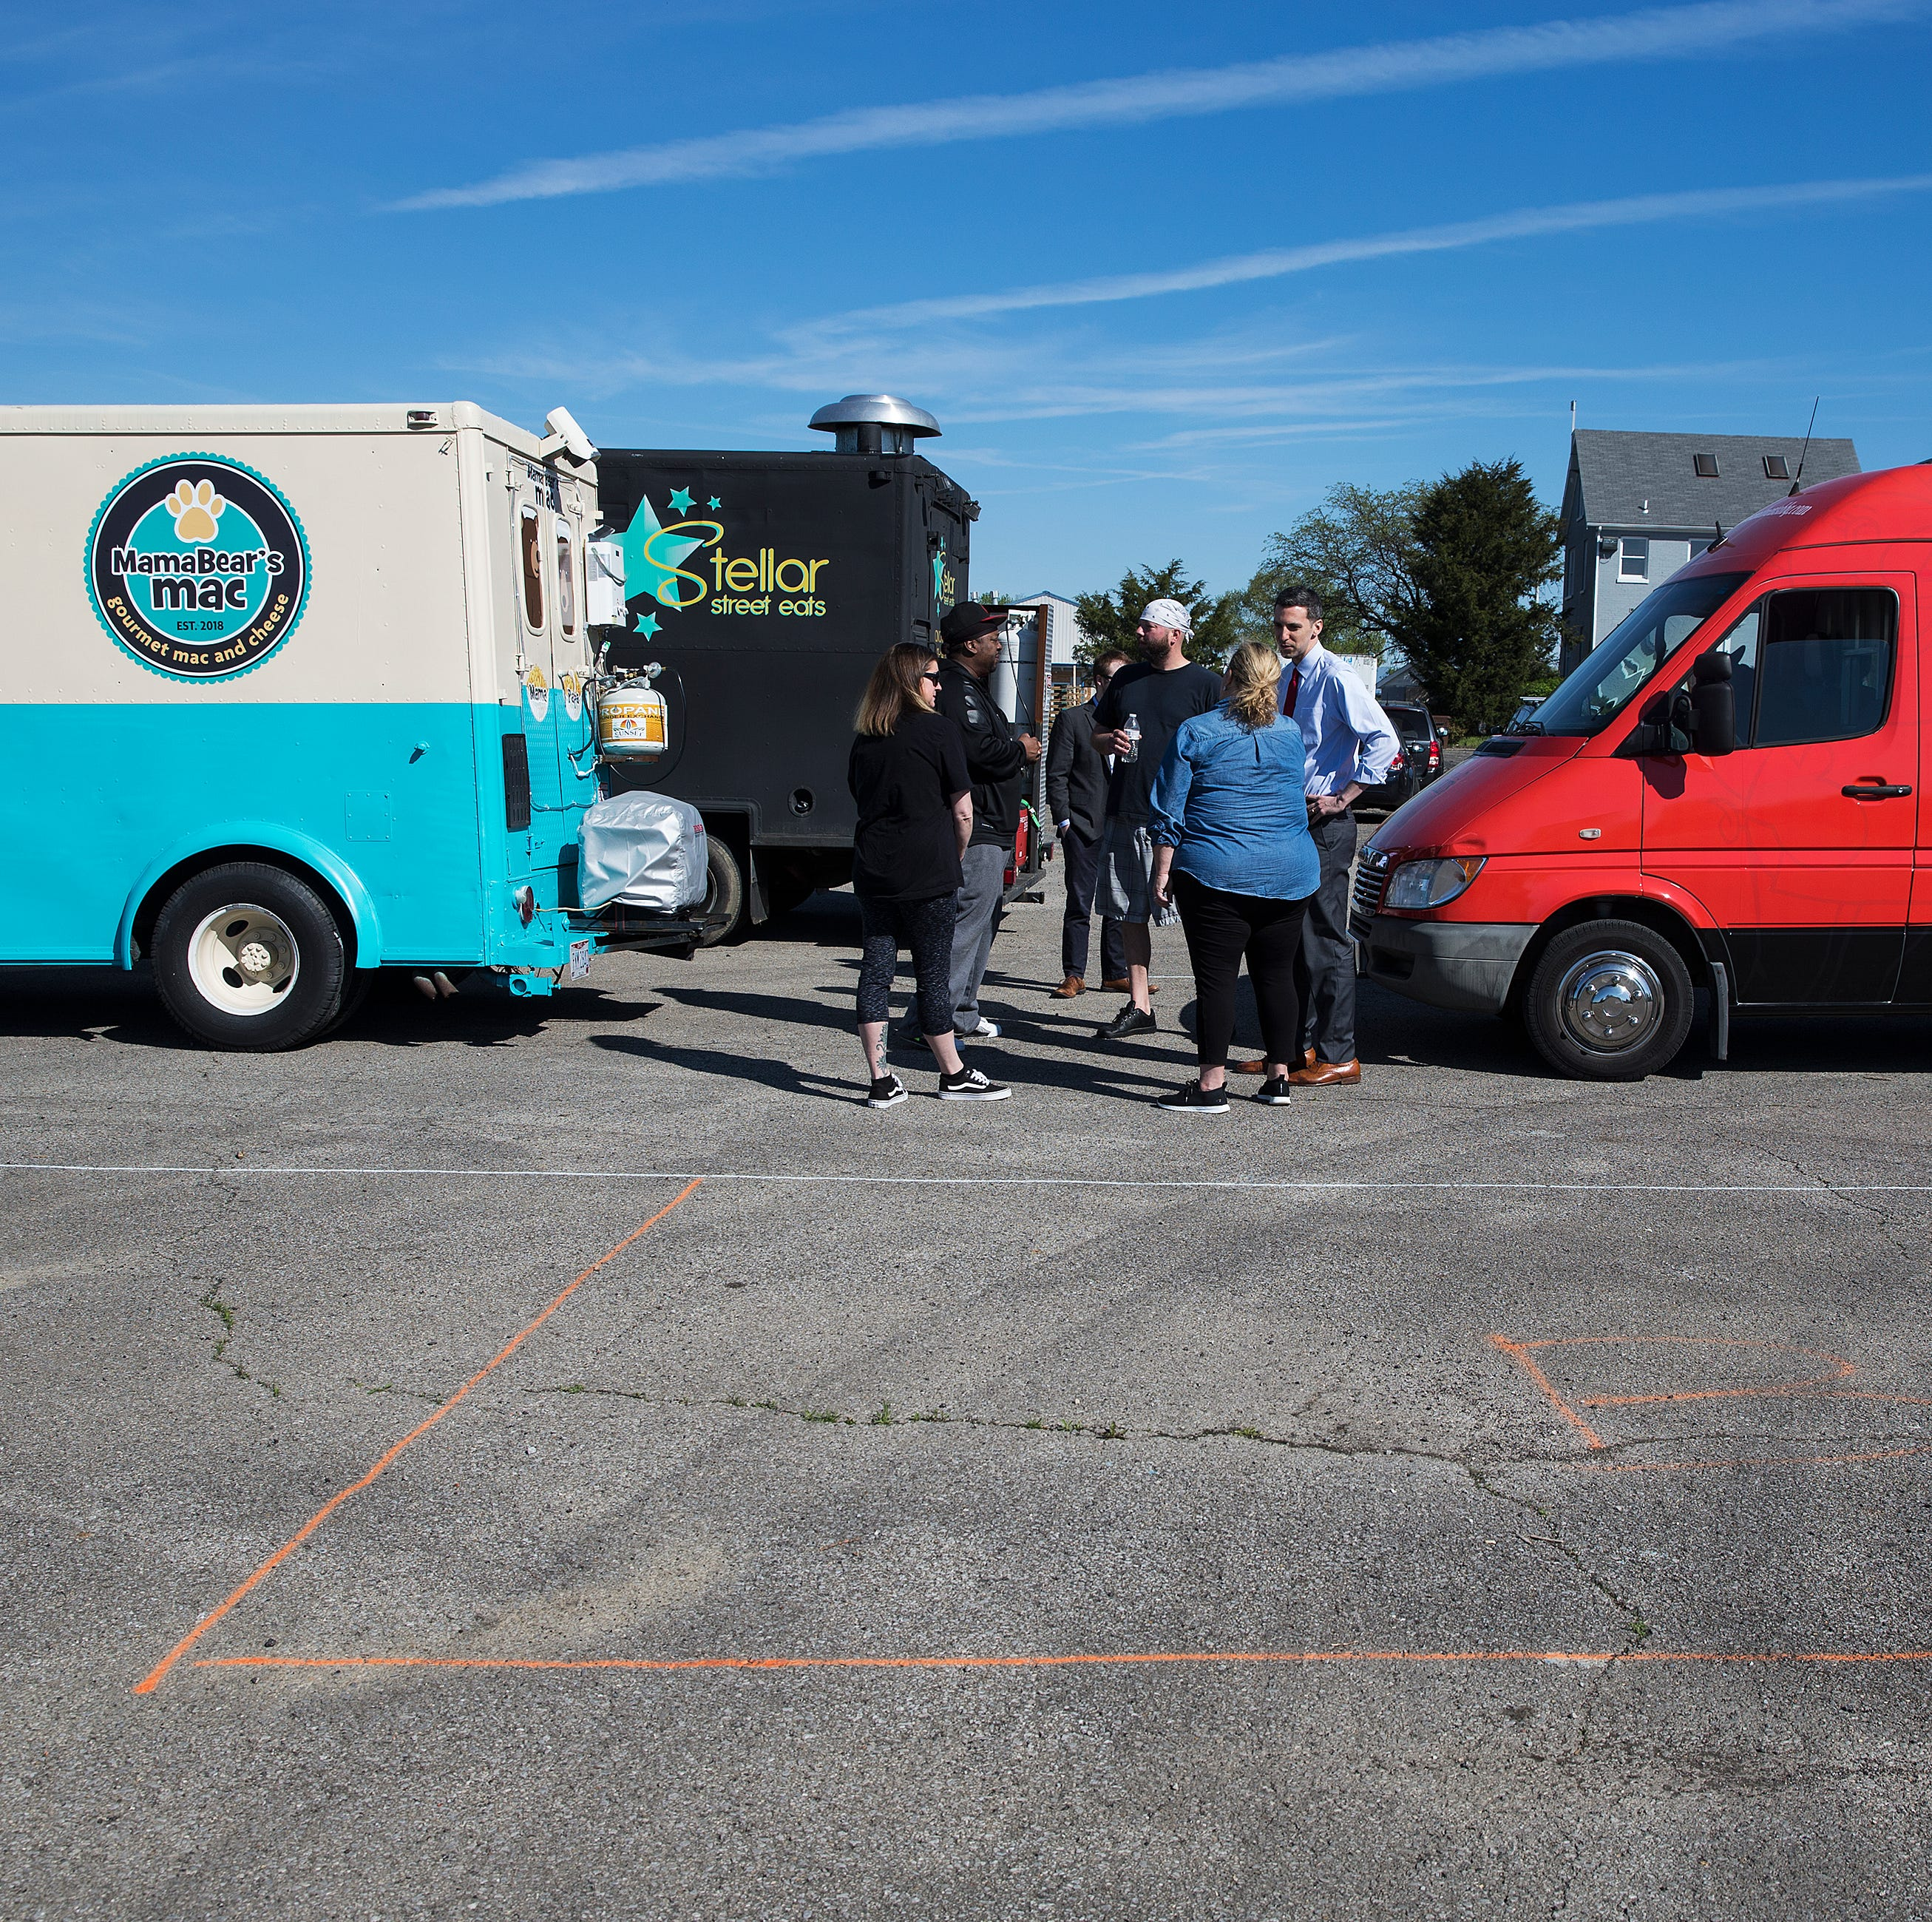 Cincinnati's new food truck park: Everything you need to know